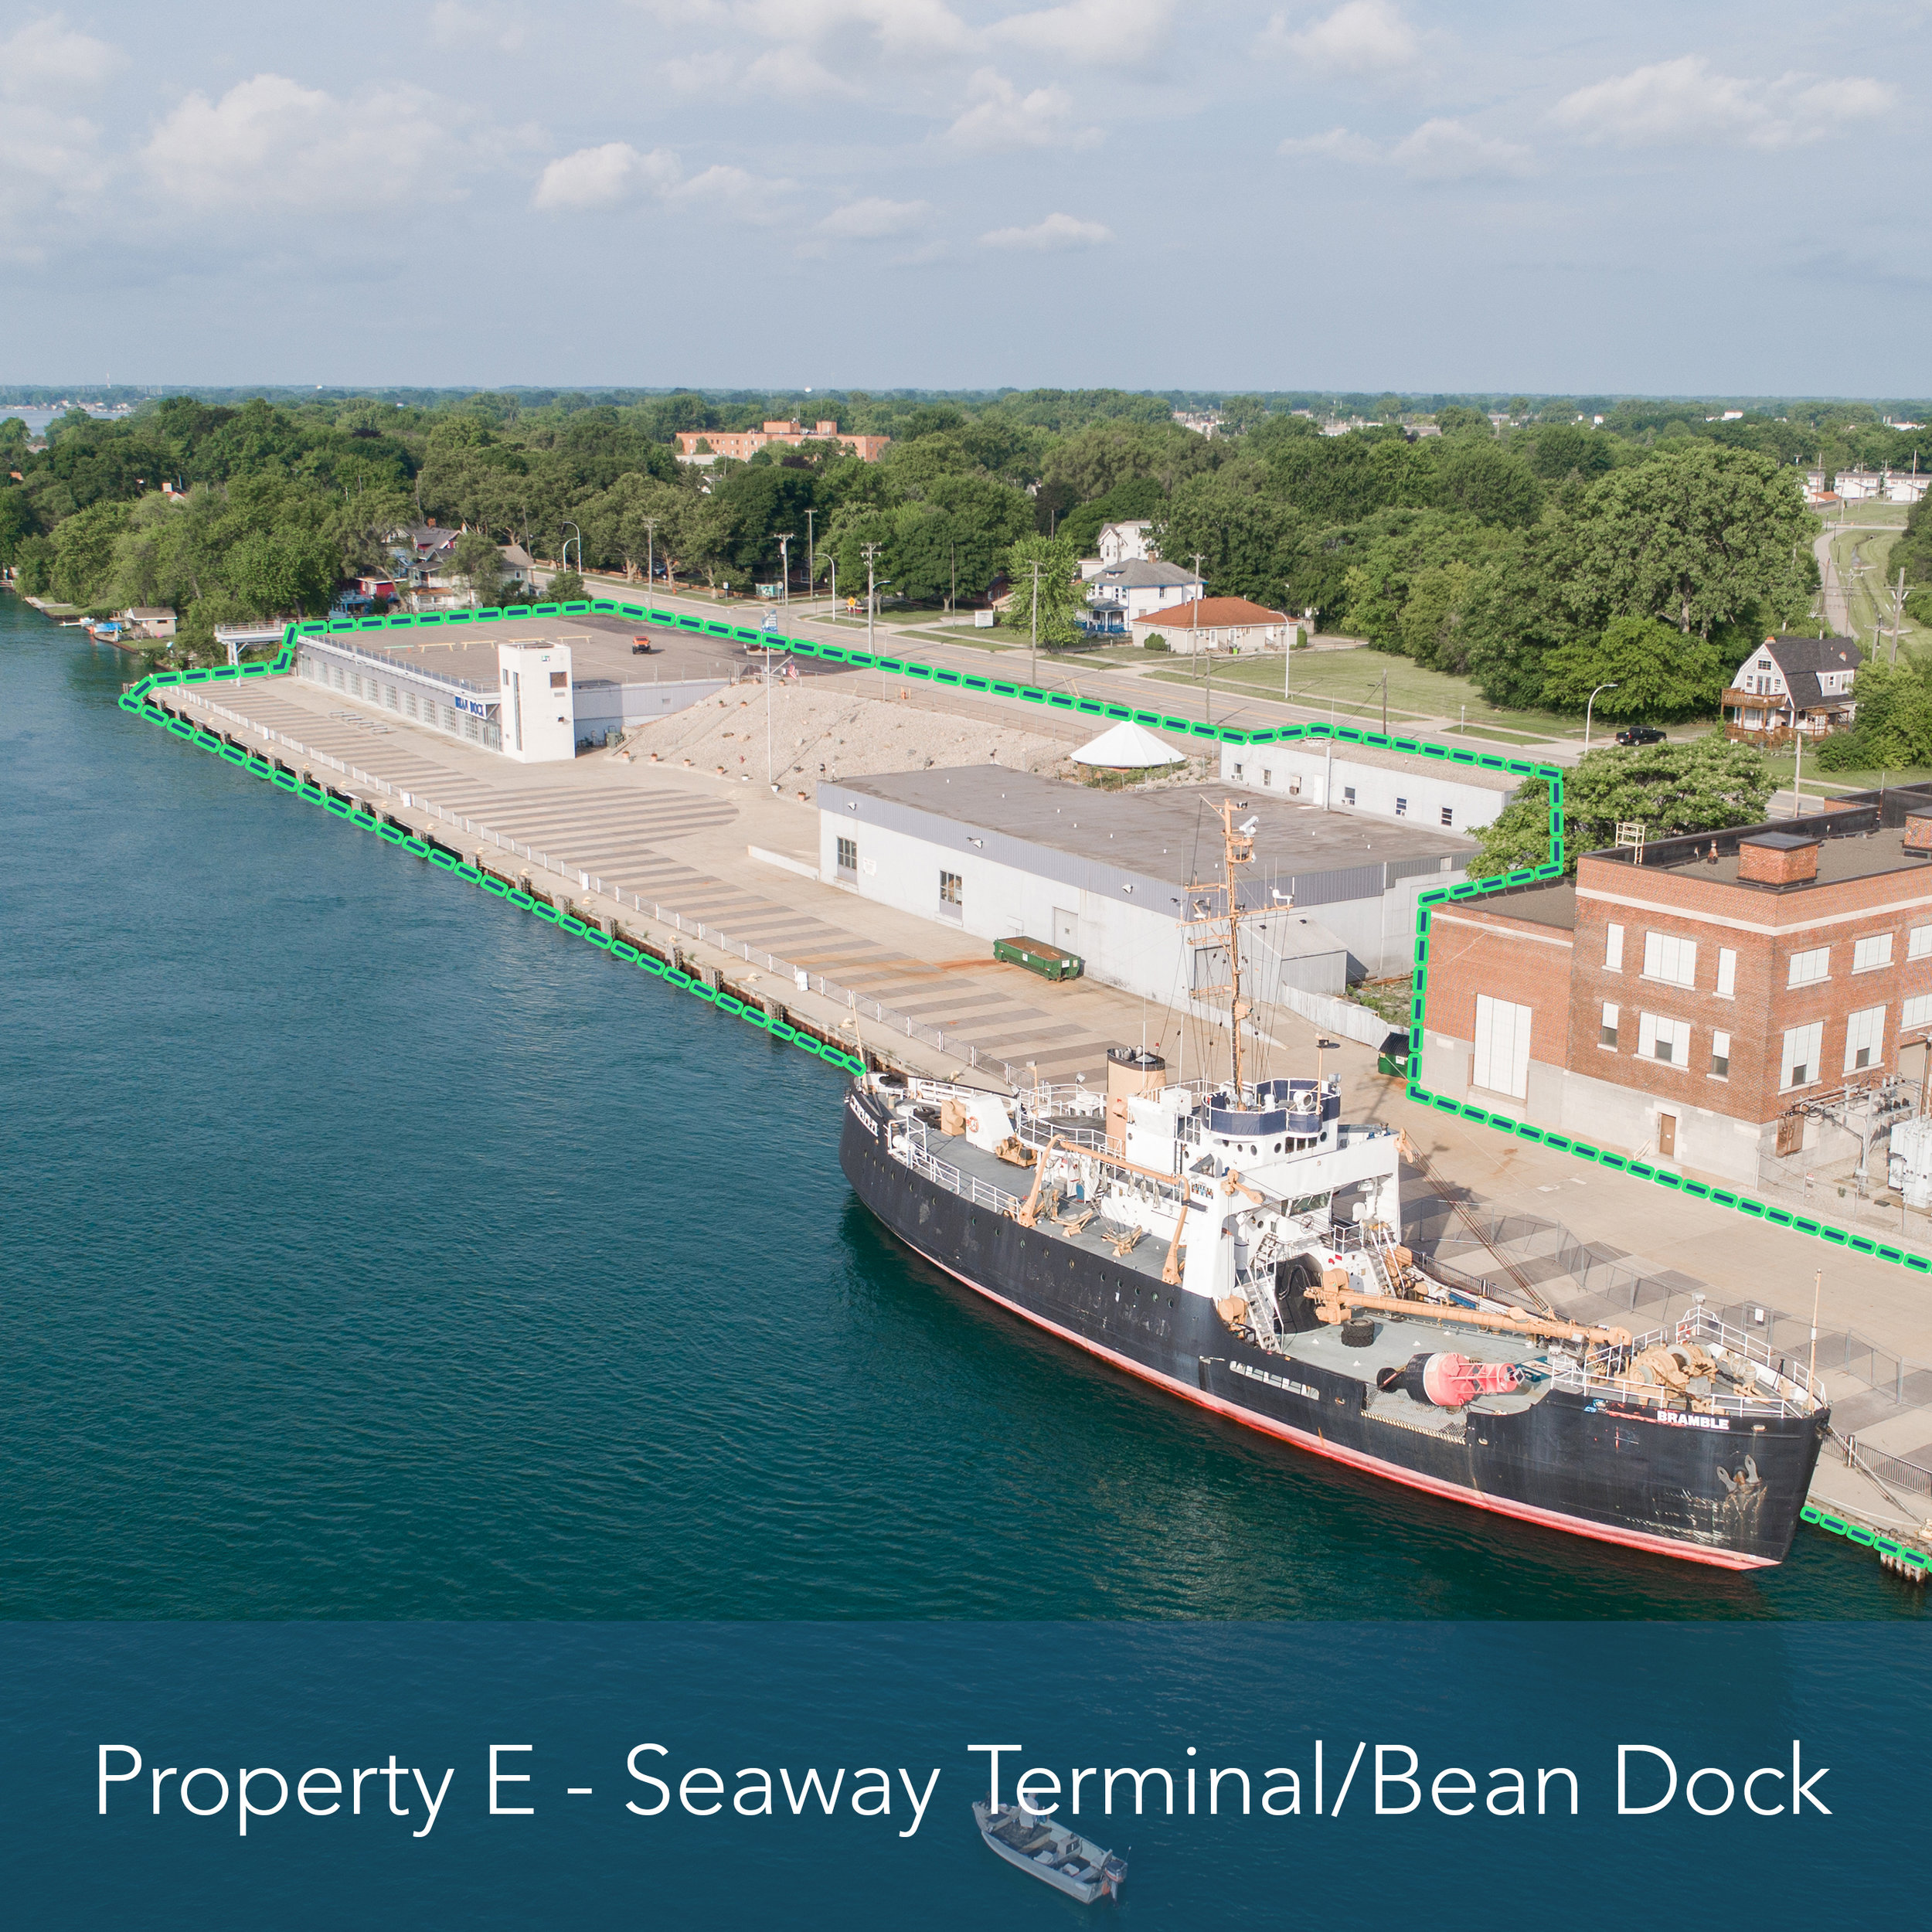 Property E - Seaway Terminal/Bean Dock   Premier location for development on the St. Clair River.